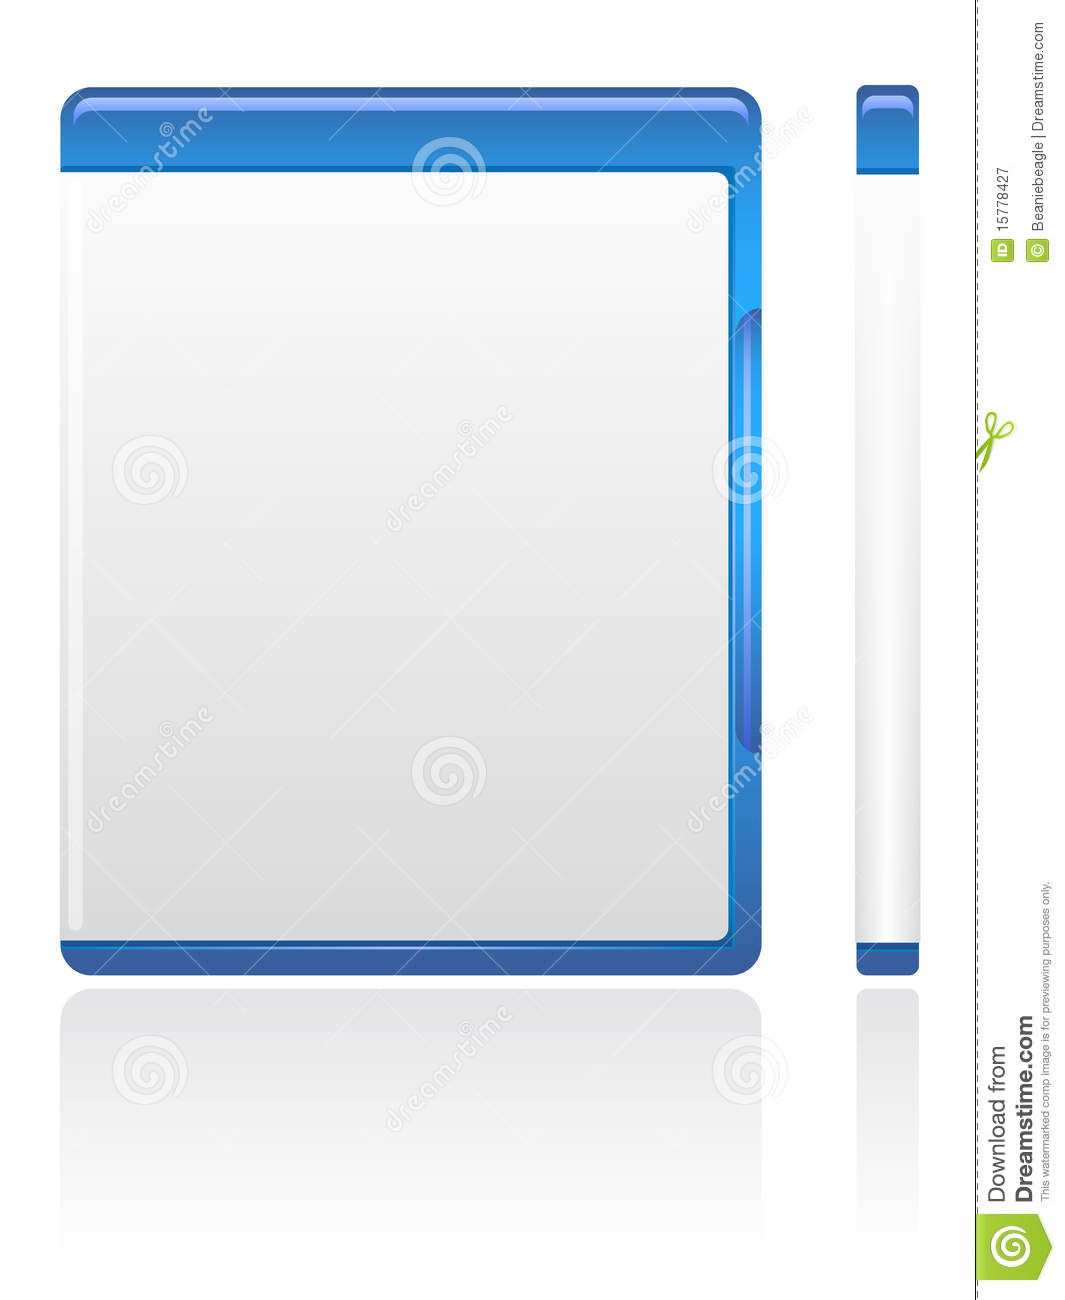 Blue Dvd Case Eps Stock Vector Illustration Of Media 15778427